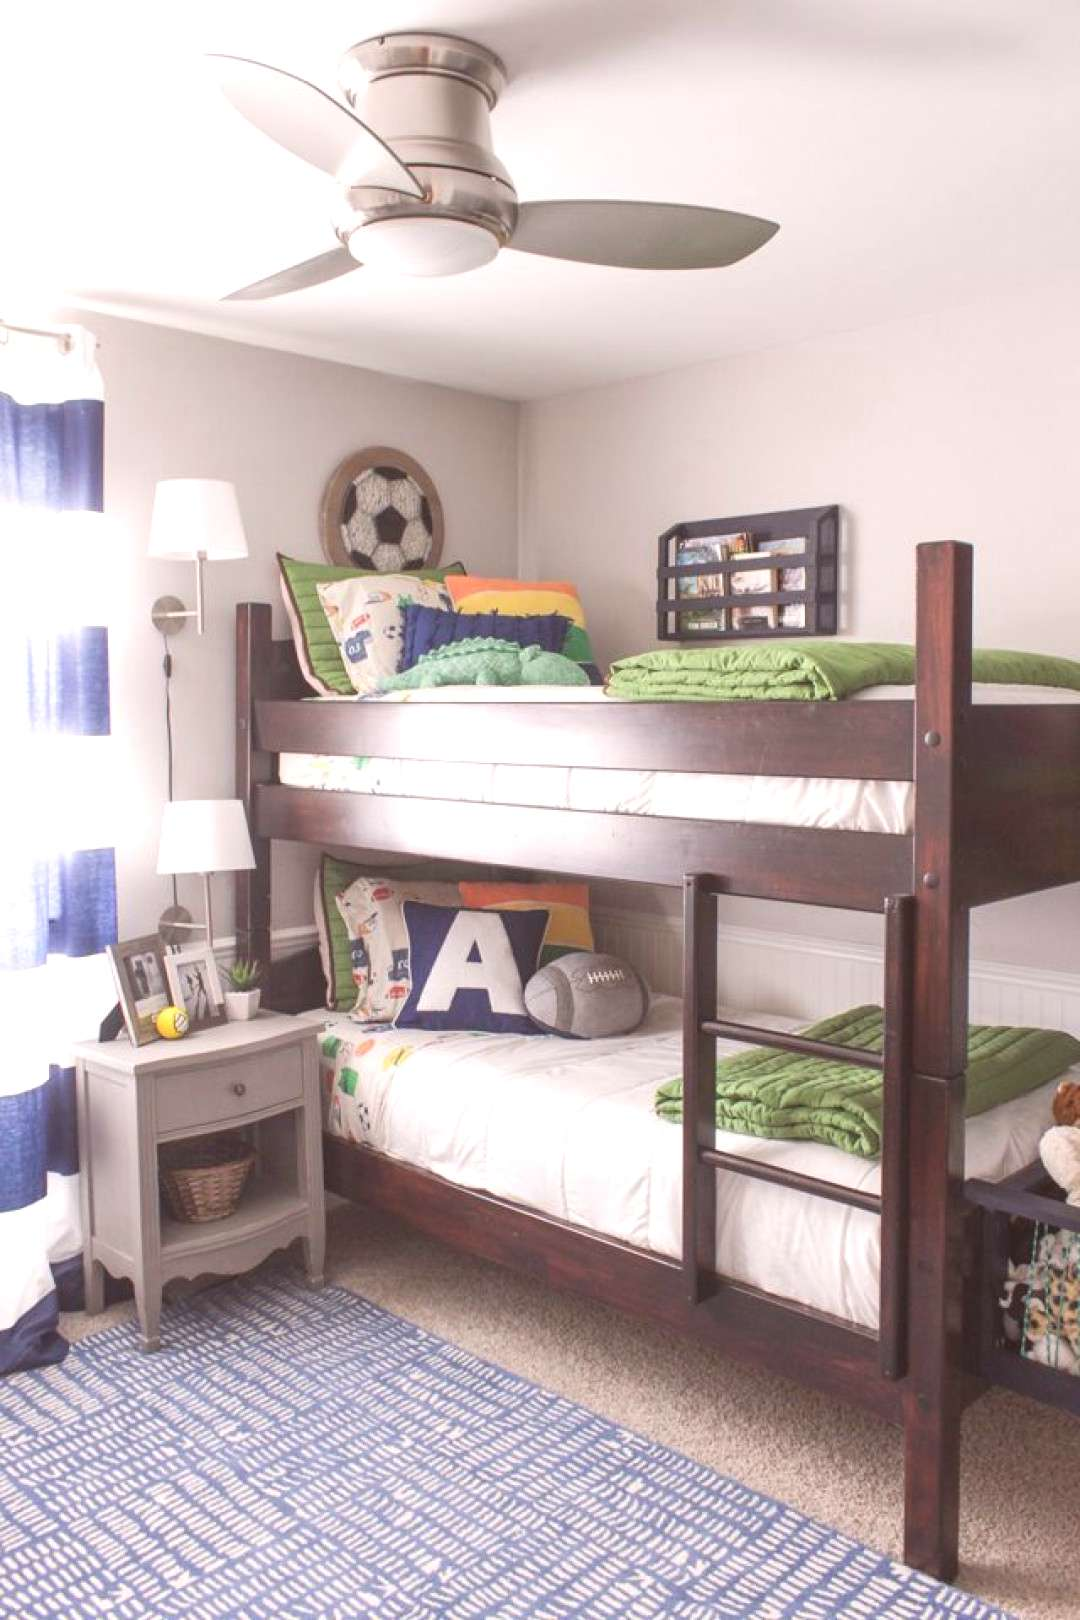 Ideas of a Childrens Room for a Boy We are glad to see you in the Interior For Me catalog here yo